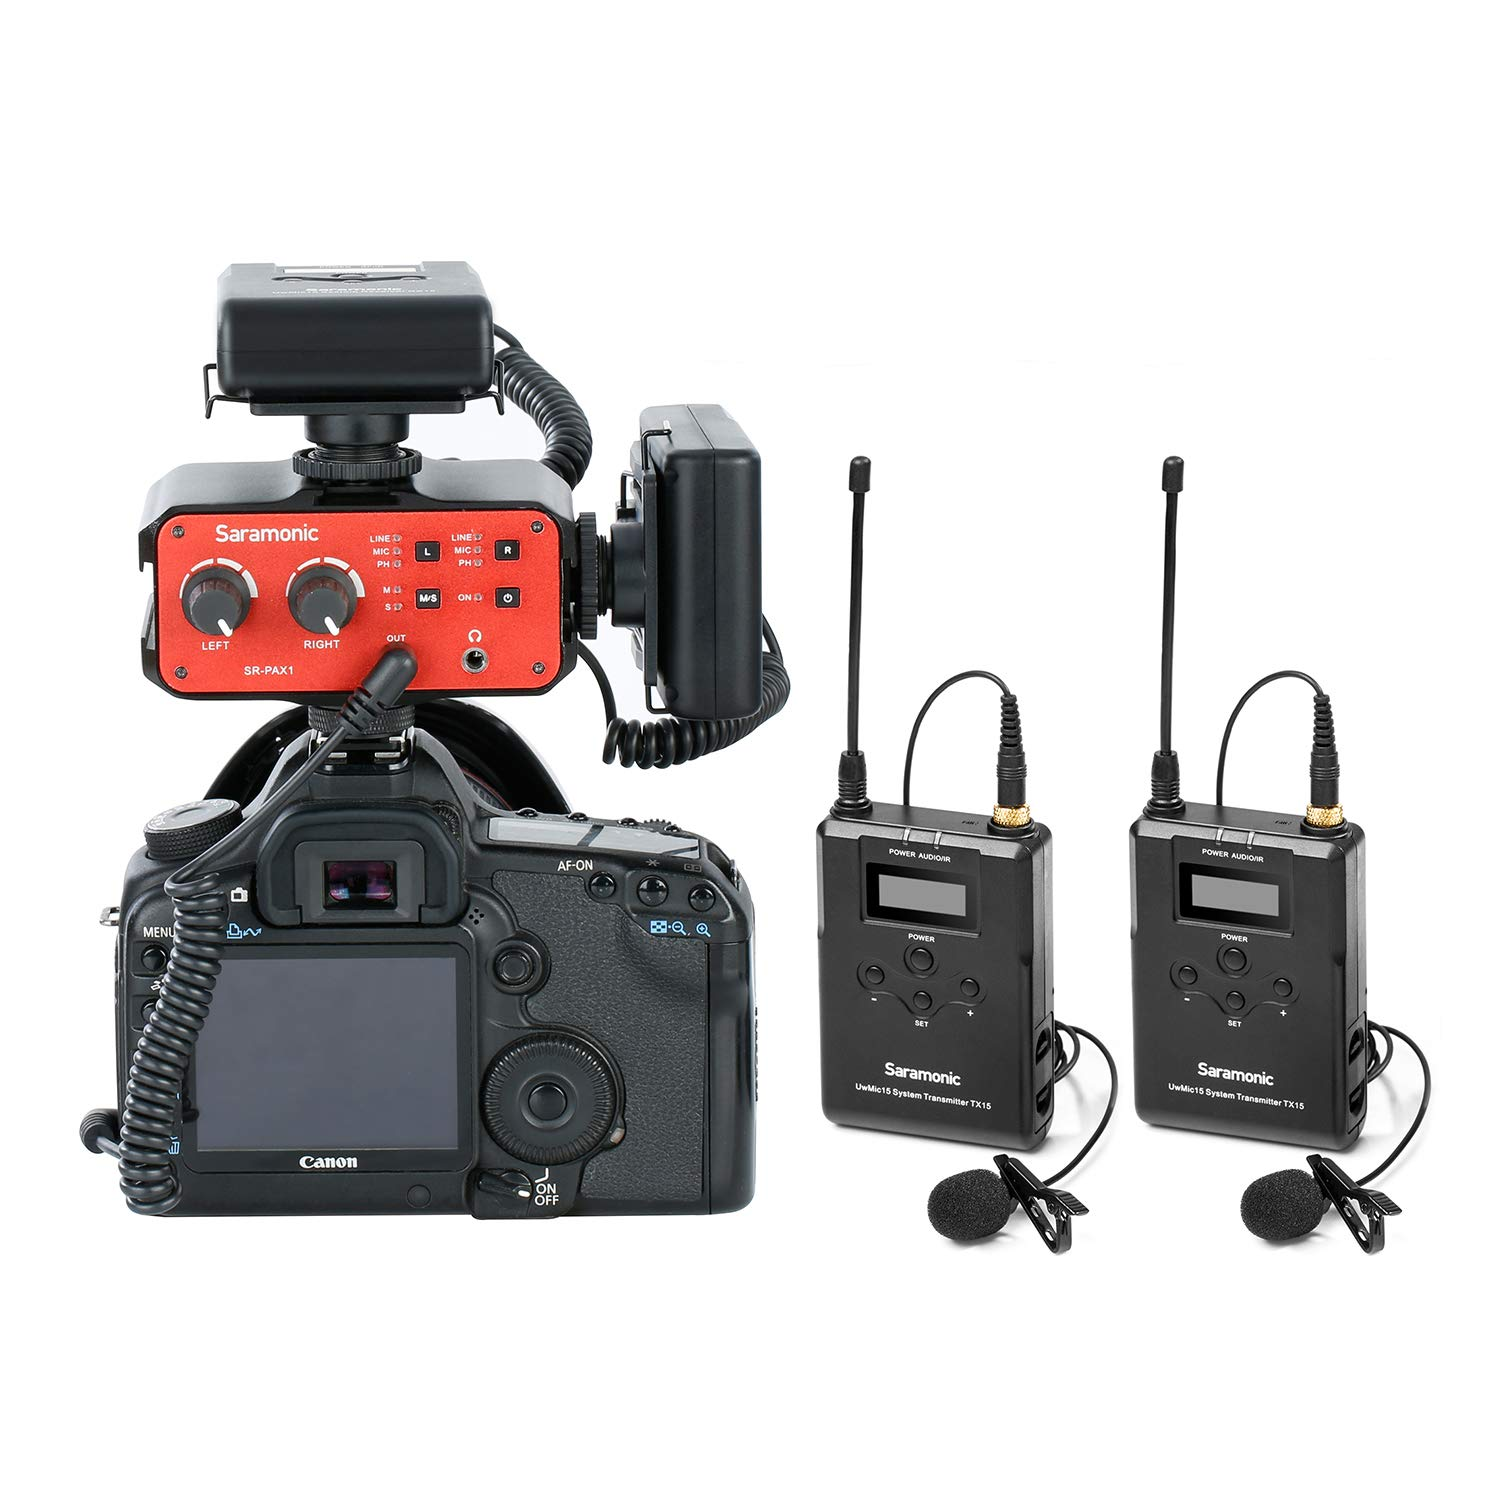 Saramonic Wireless UHF Dual Lavalier Microphone System with 2 Bodypack Transmitters, 2 Portable Receivers, and a Premium Audio Mixer for DSLR Cameras & Camcorders